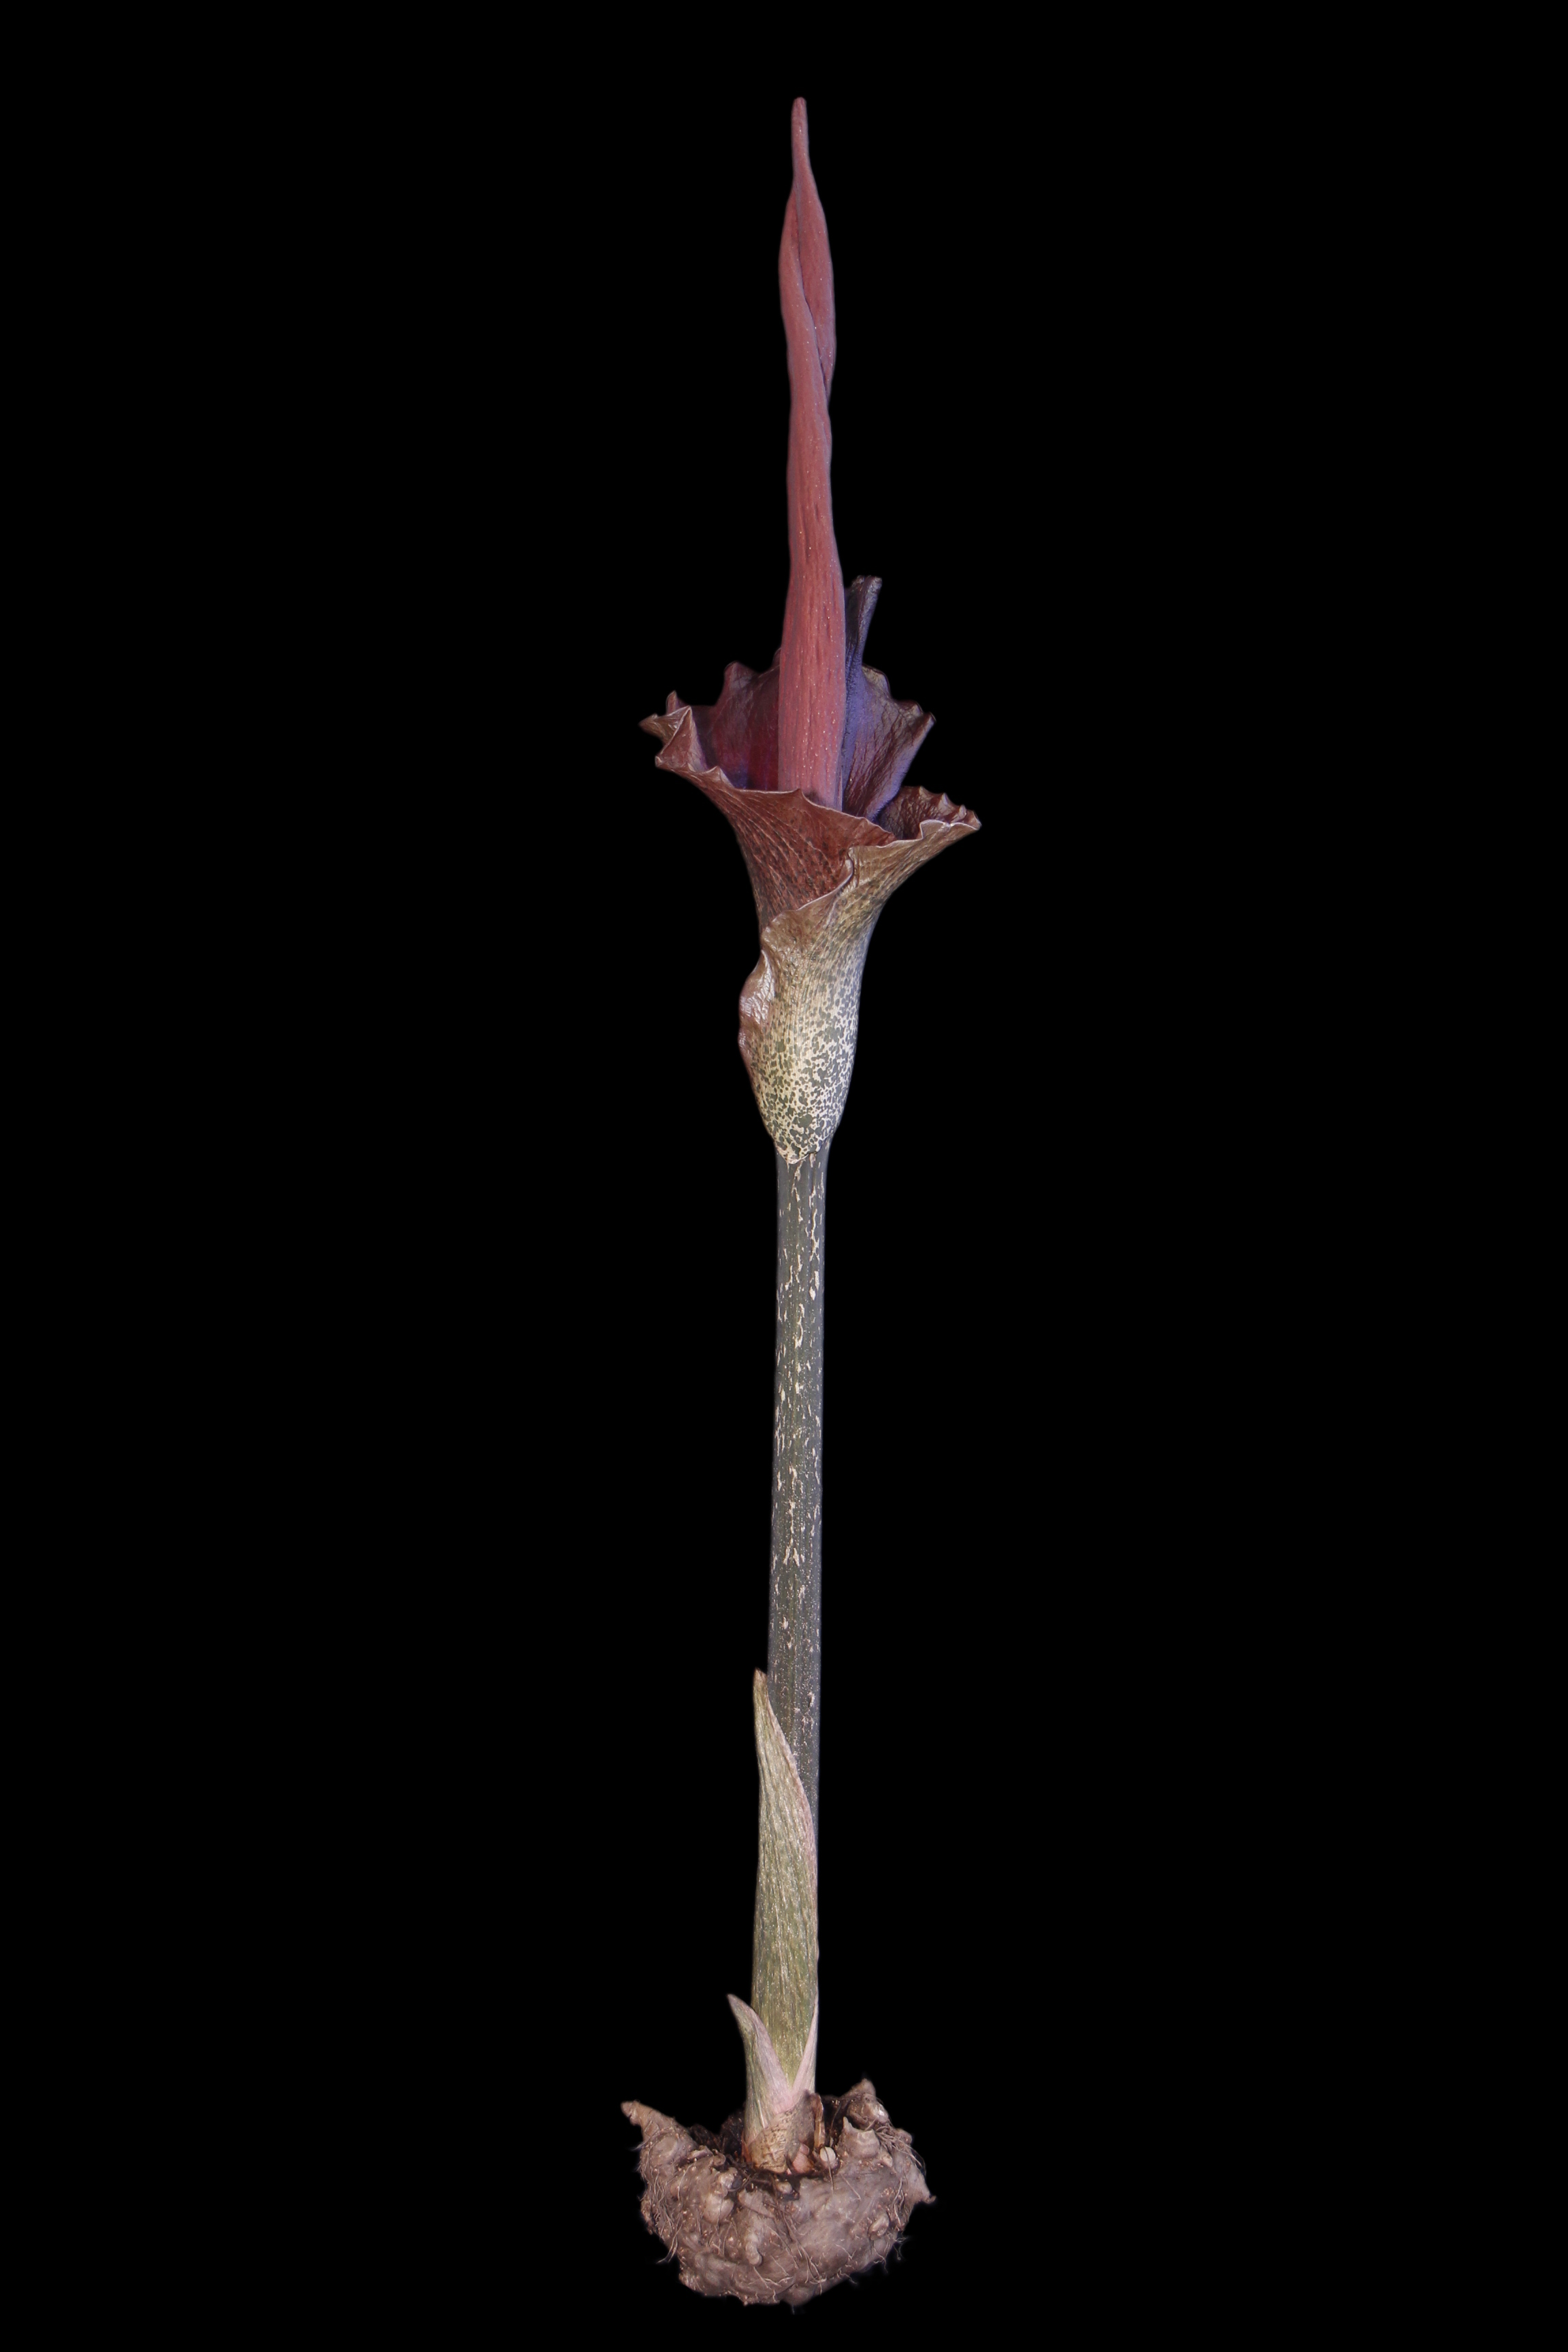 amorphophallus konjac araceae devil 39 s tongue voodoo lily. Black Bedroom Furniture Sets. Home Design Ideas